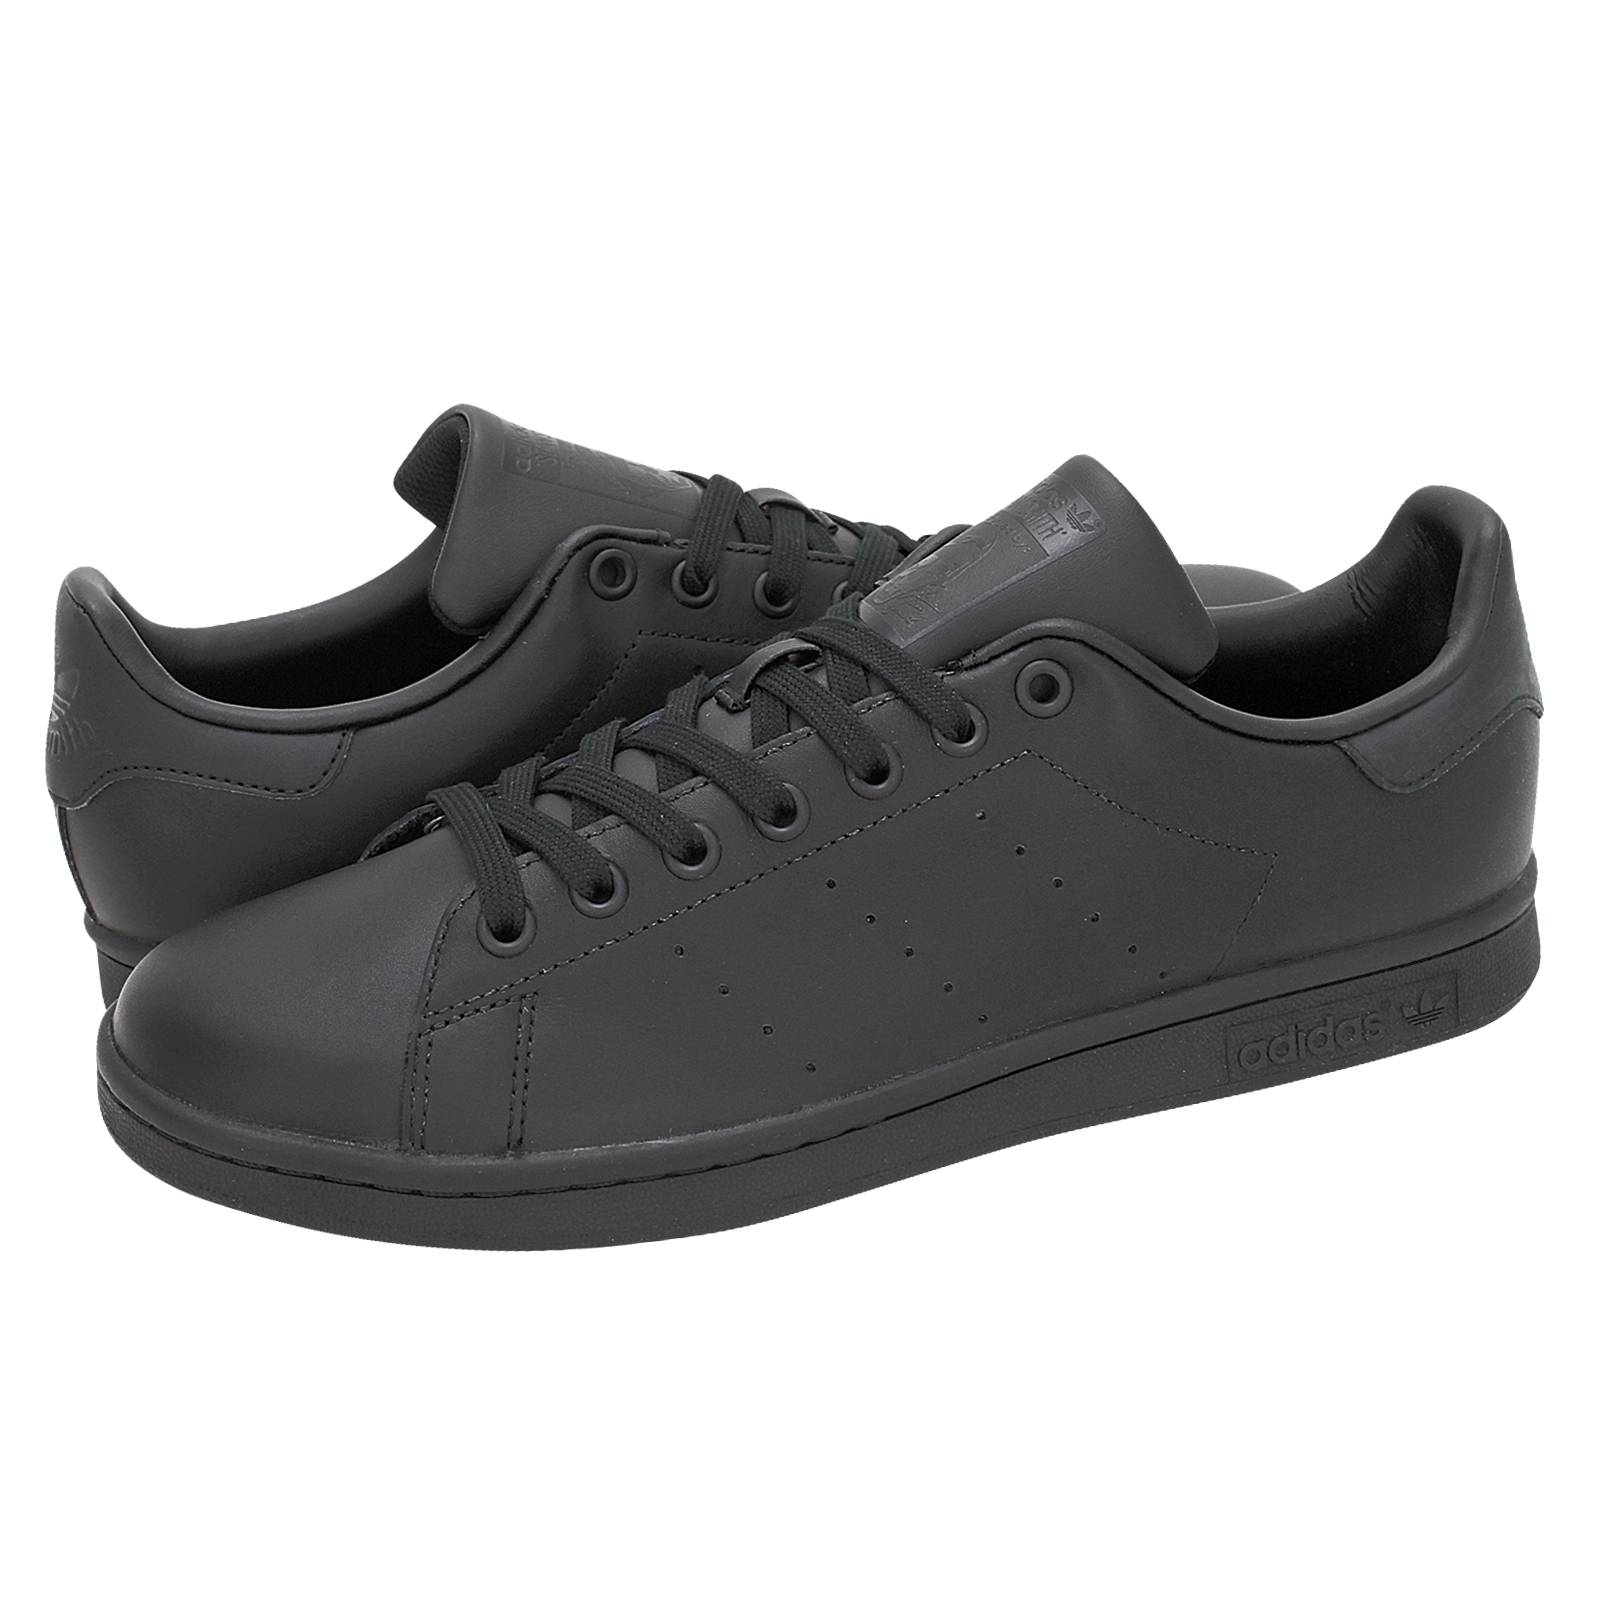 finest selection 675ce fec75 Adidas Stan Smith casual shoes